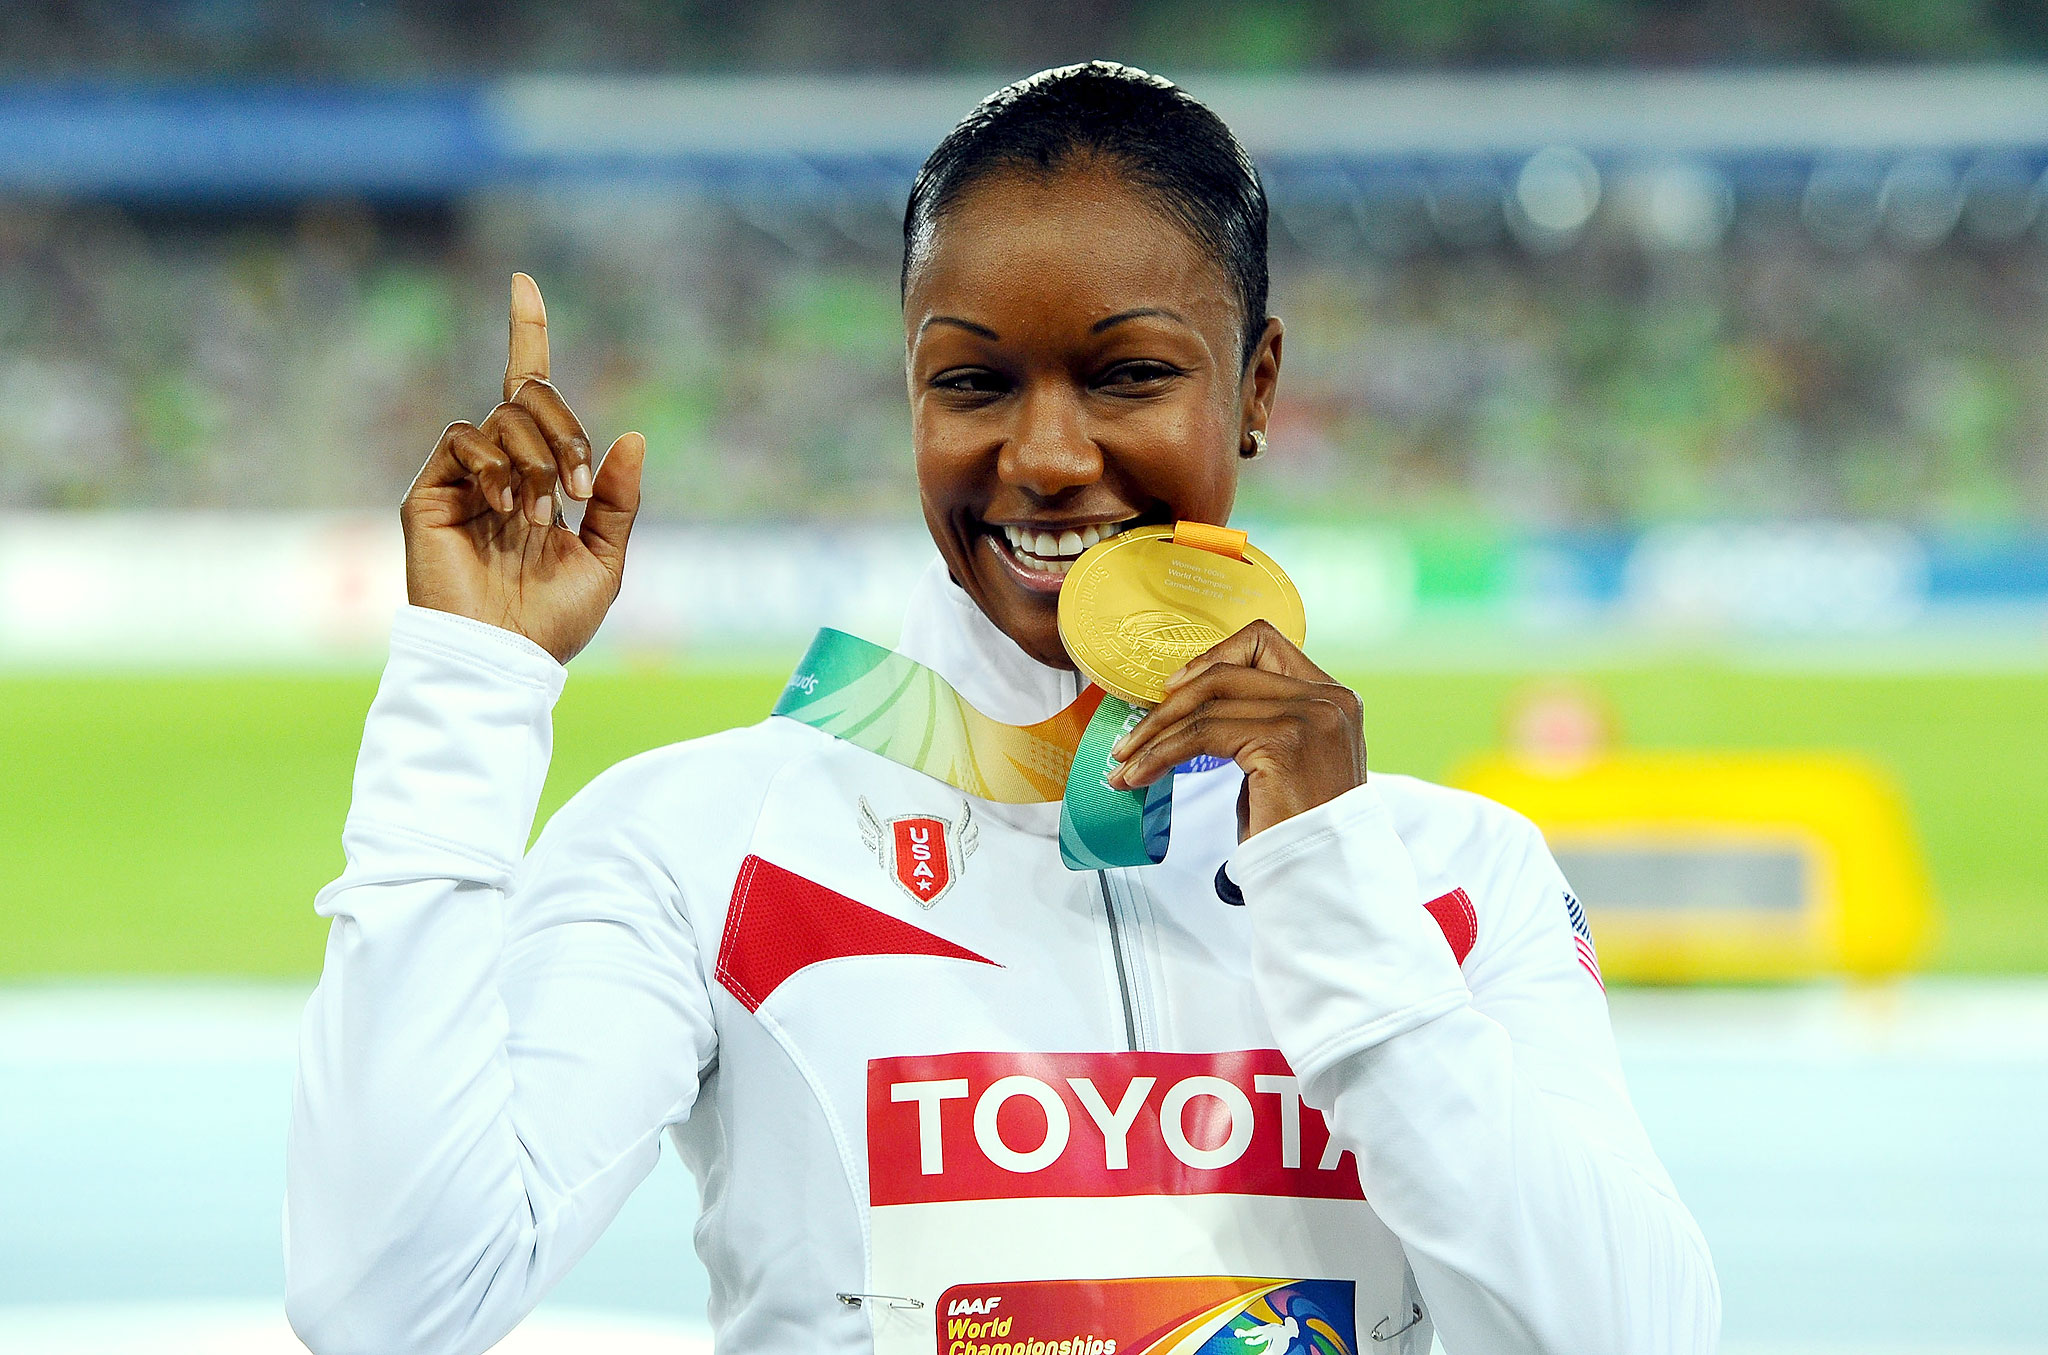 Carmelita Jeter struck gold twice at the 2011 world championships in South Korea, winning the 100 meters as well as the 4x100 relay.